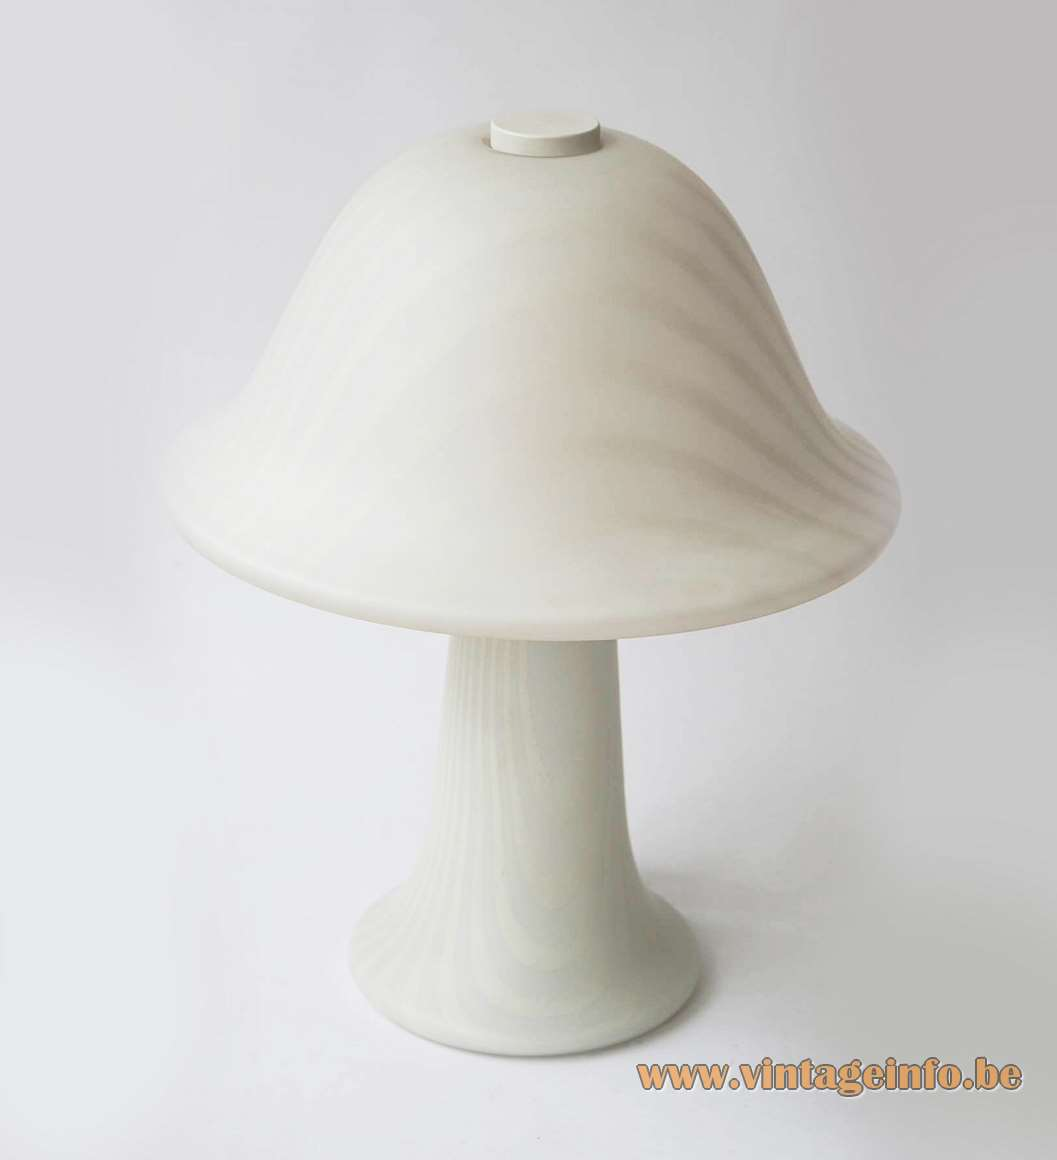 1970s Peill + Putzler mushroom table lamp white striped opal satinised frosted glass 1980s Germany E27 socket